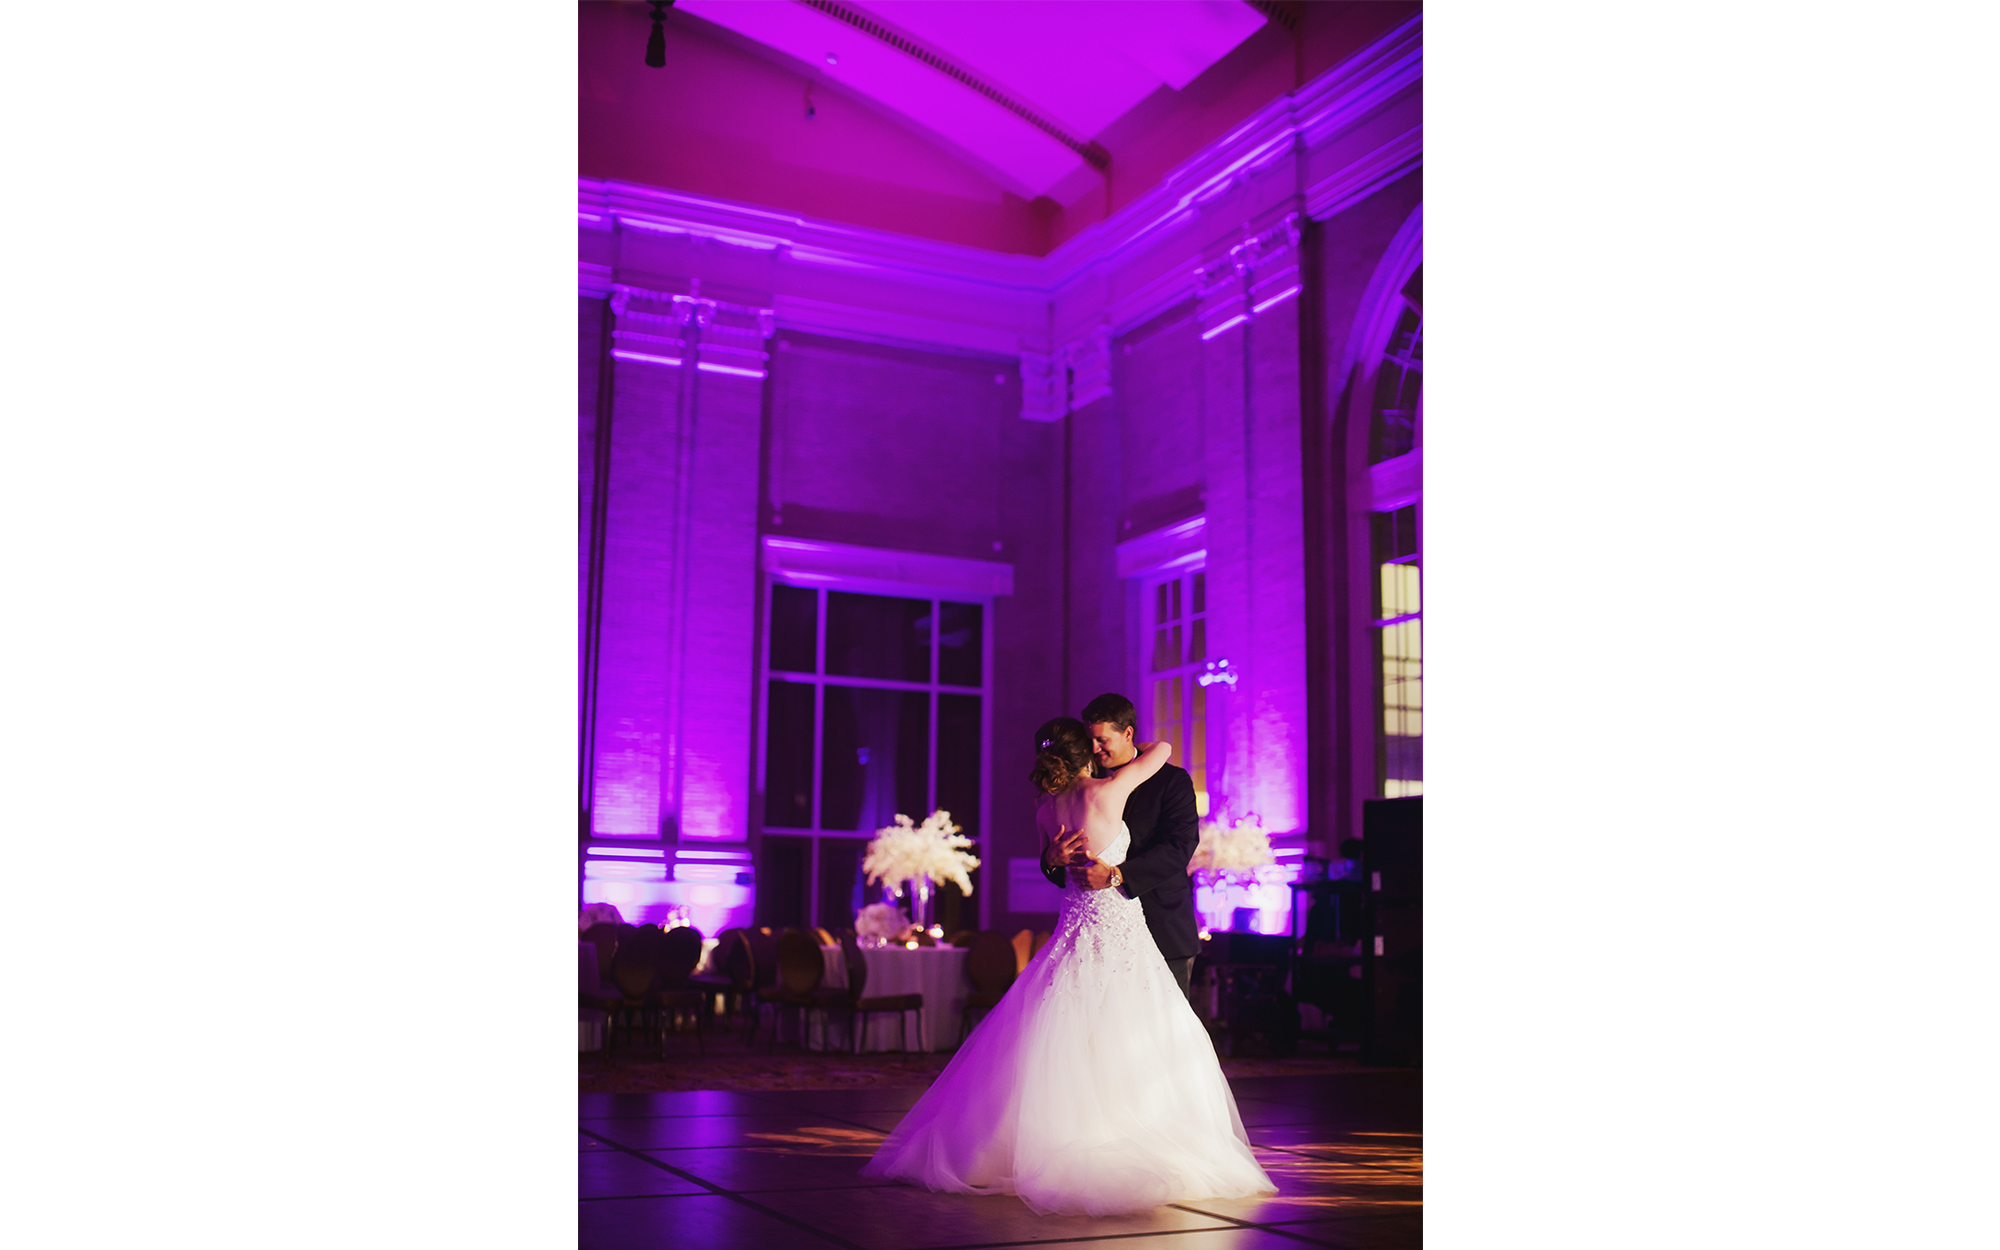 decor lighting at Union Station, Dallas Texas